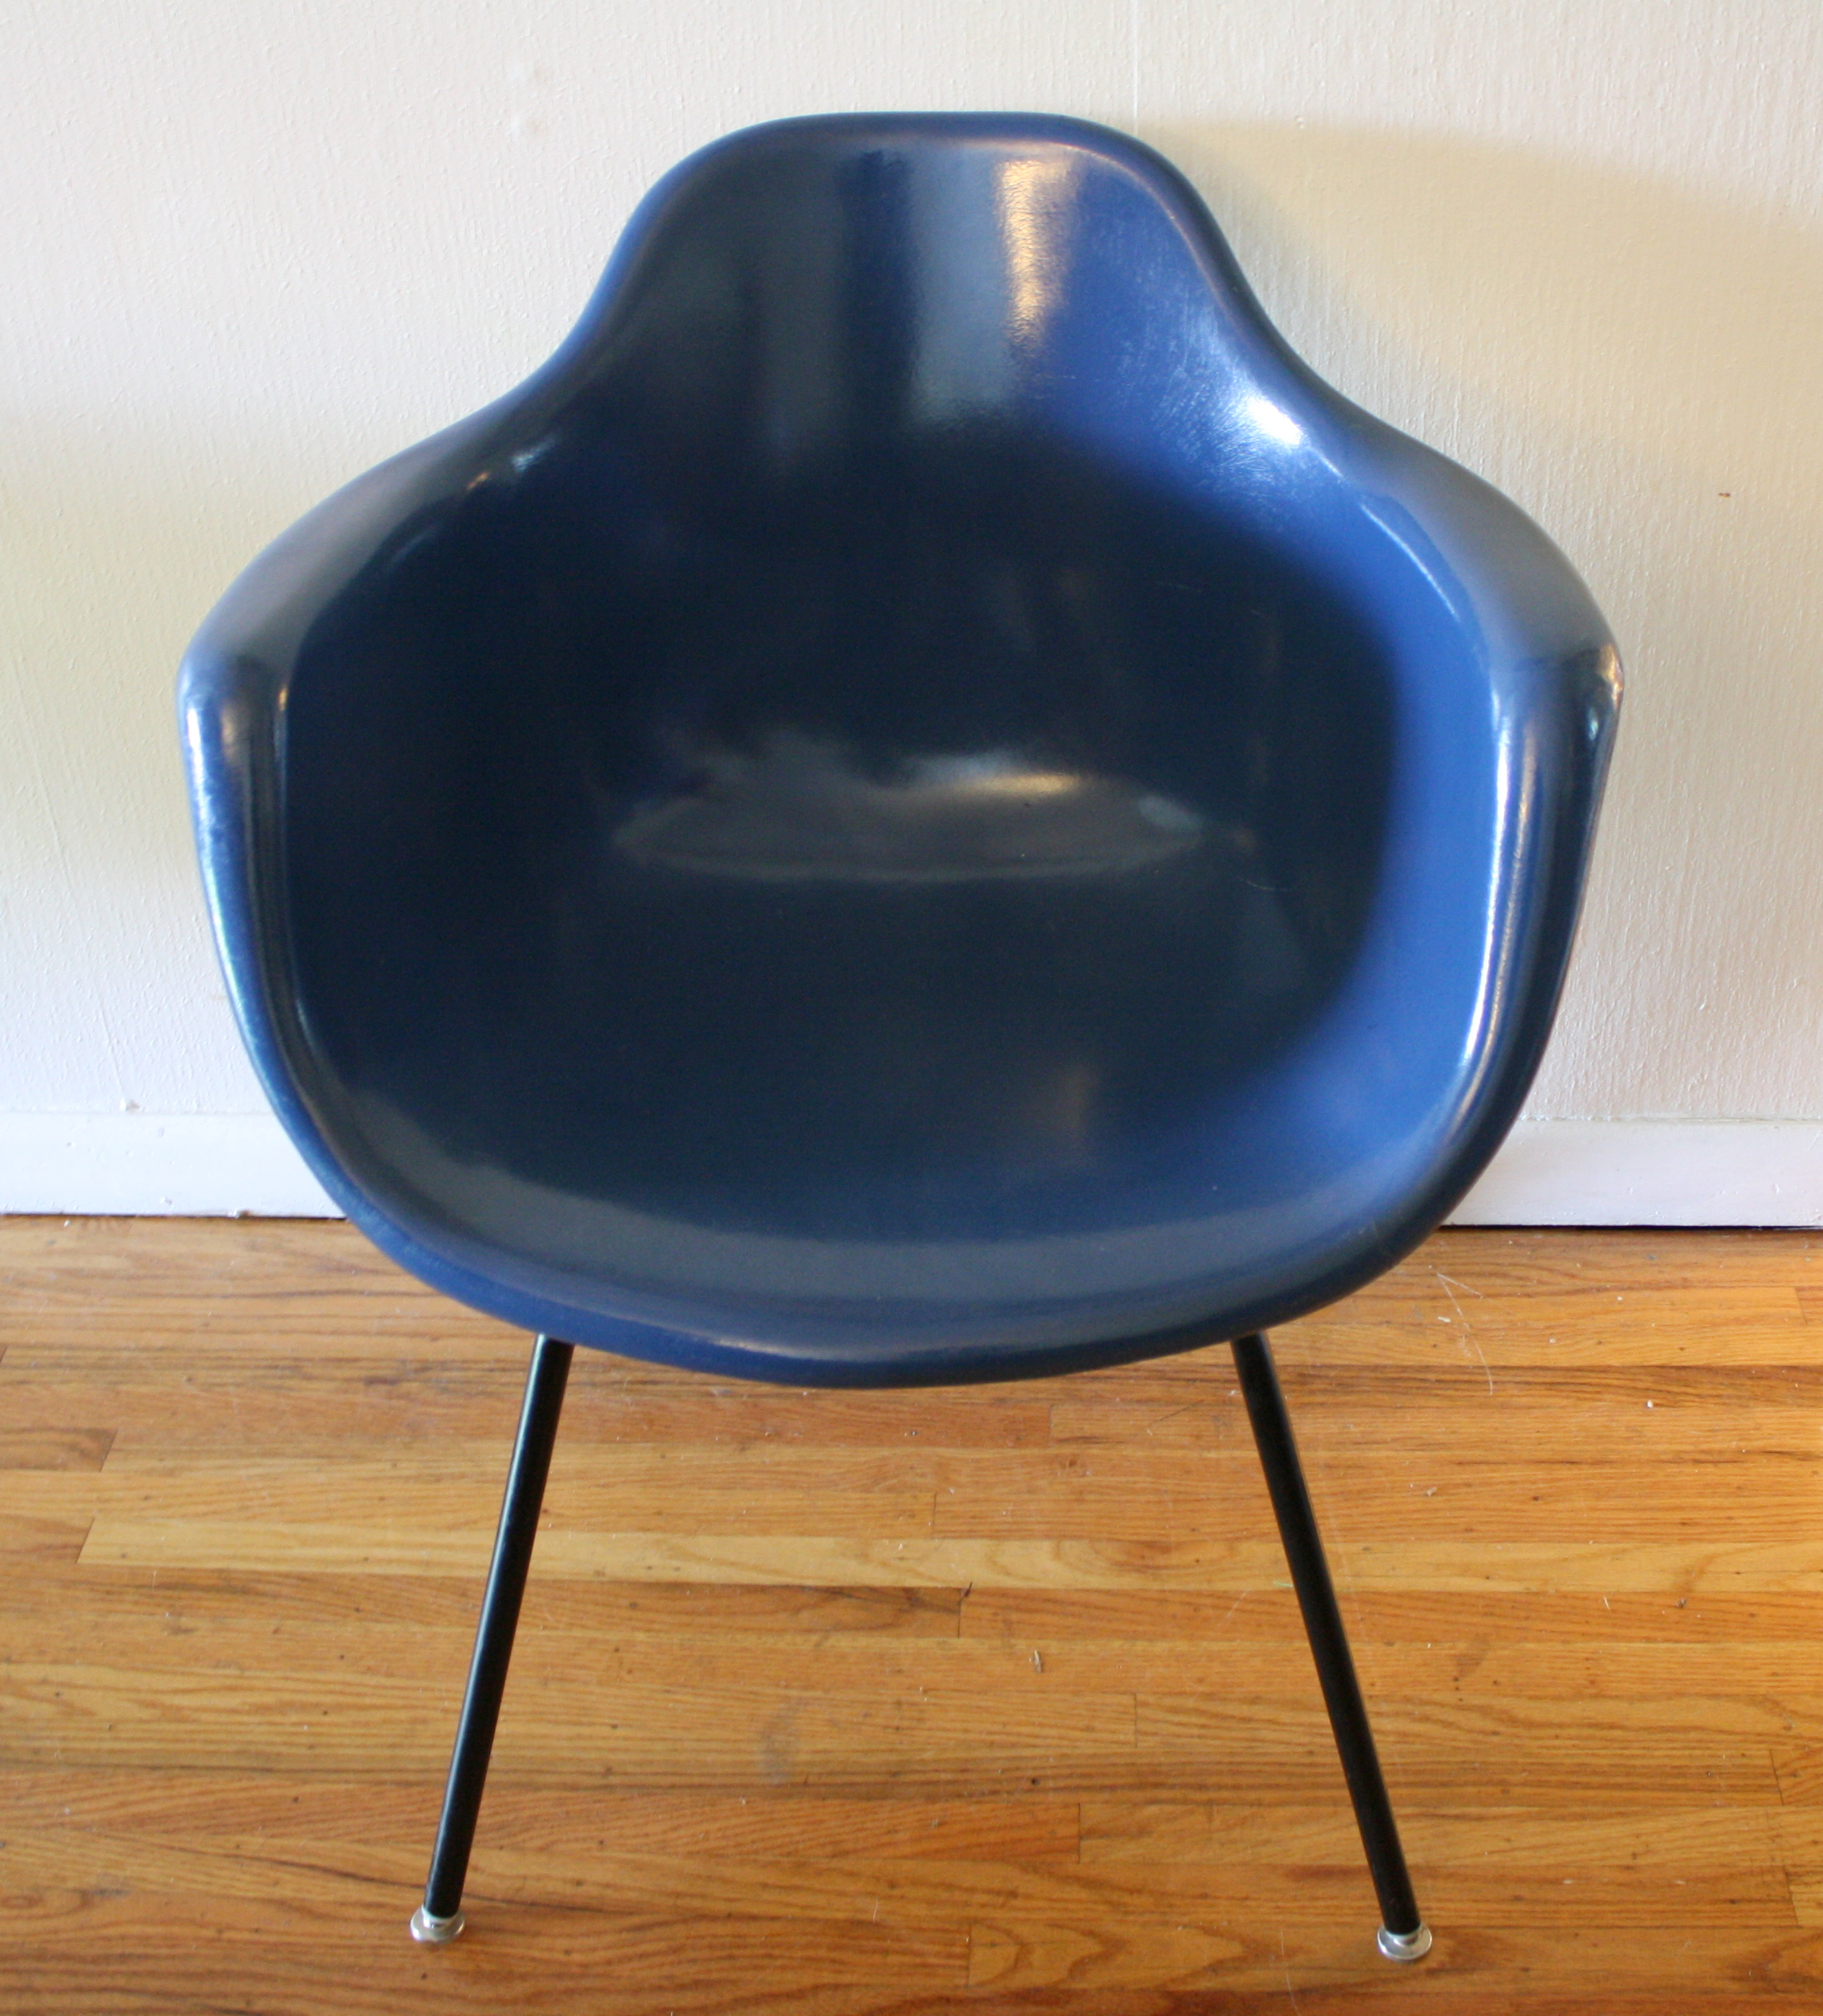 Charmant Mid Century Modern Cobalt Blue Shell Chairs